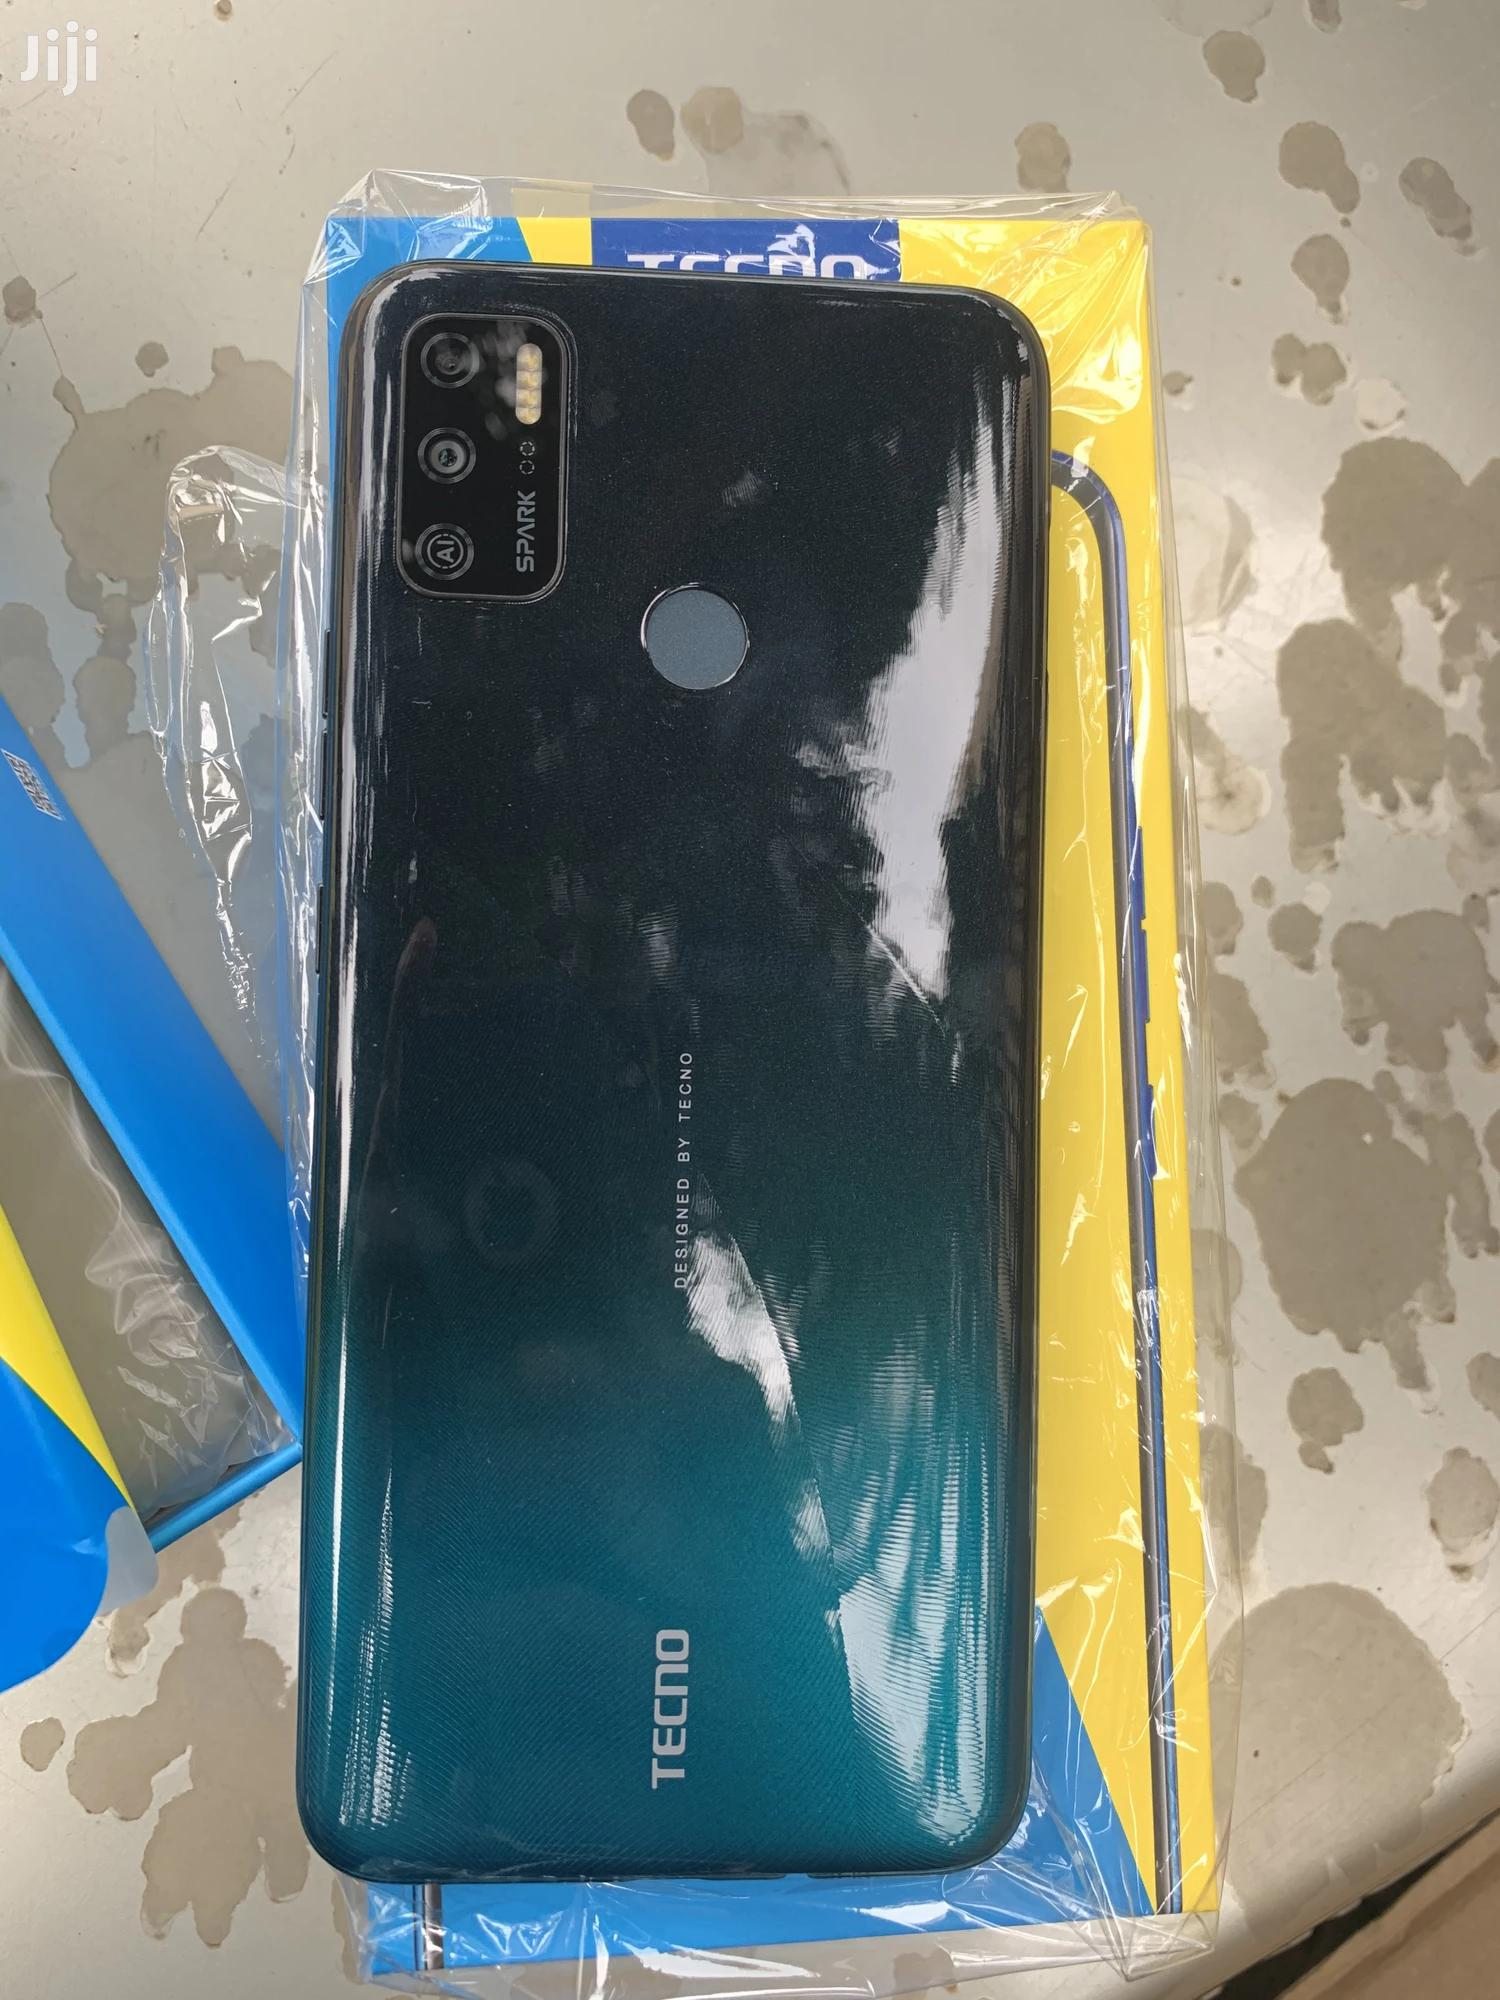 New Tecno Spark 5 Air 32 GB | Mobile Phones for sale in Kampala, Central Region, Uganda